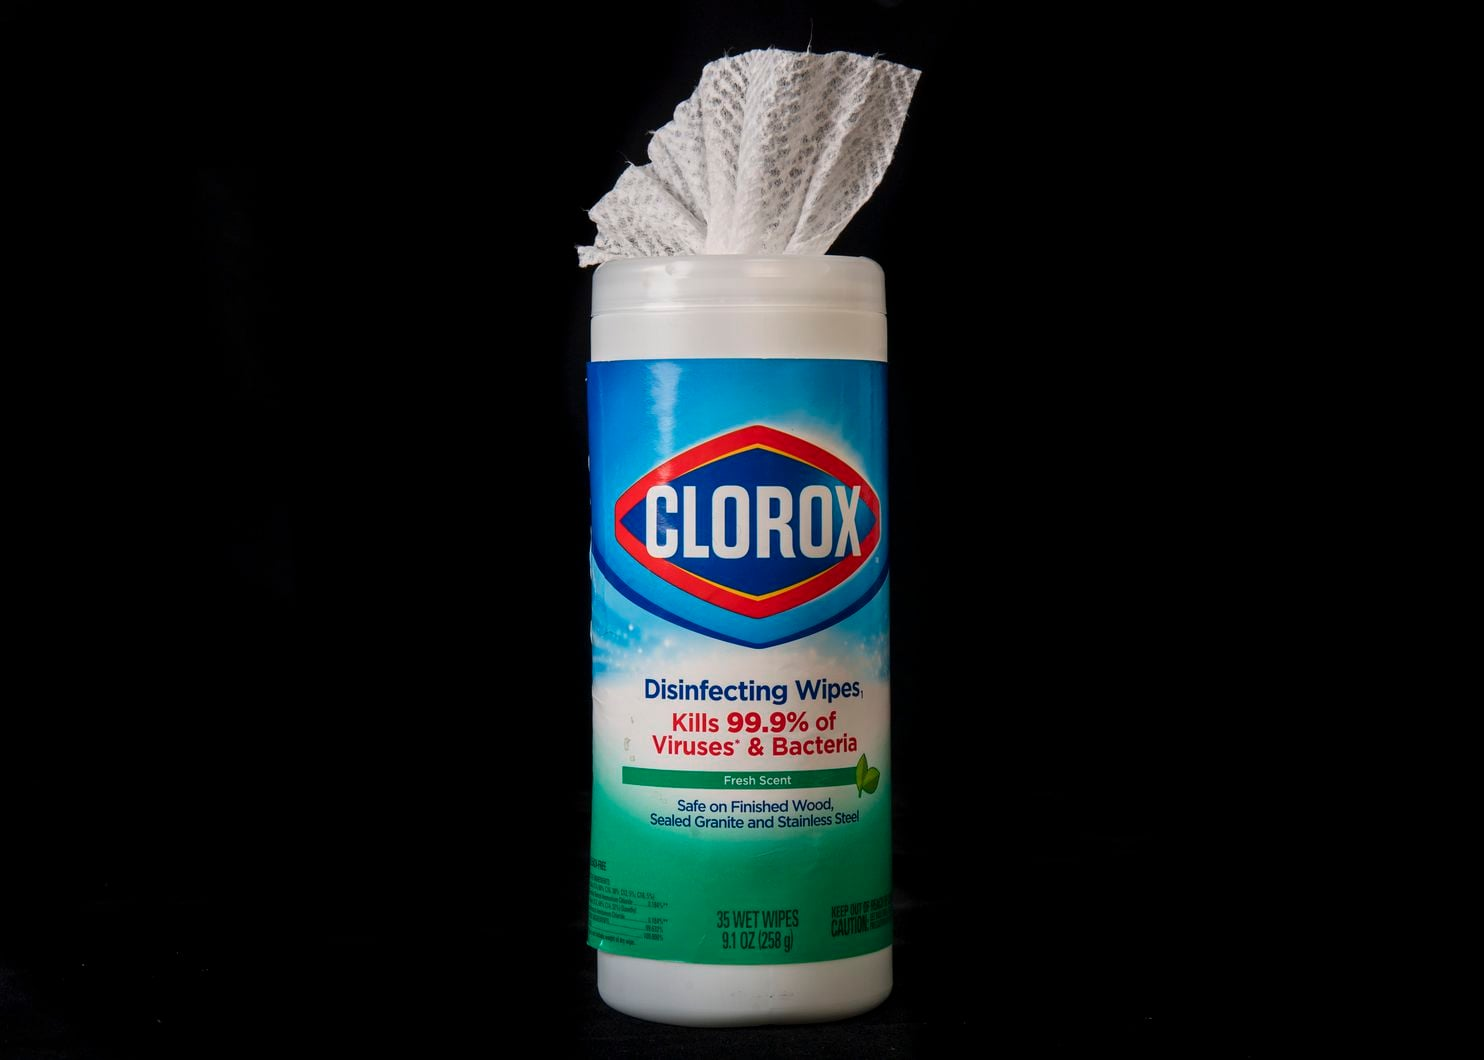 Clorox Disinfecting Wipes image shared by medicaid lawyers at Louisiana